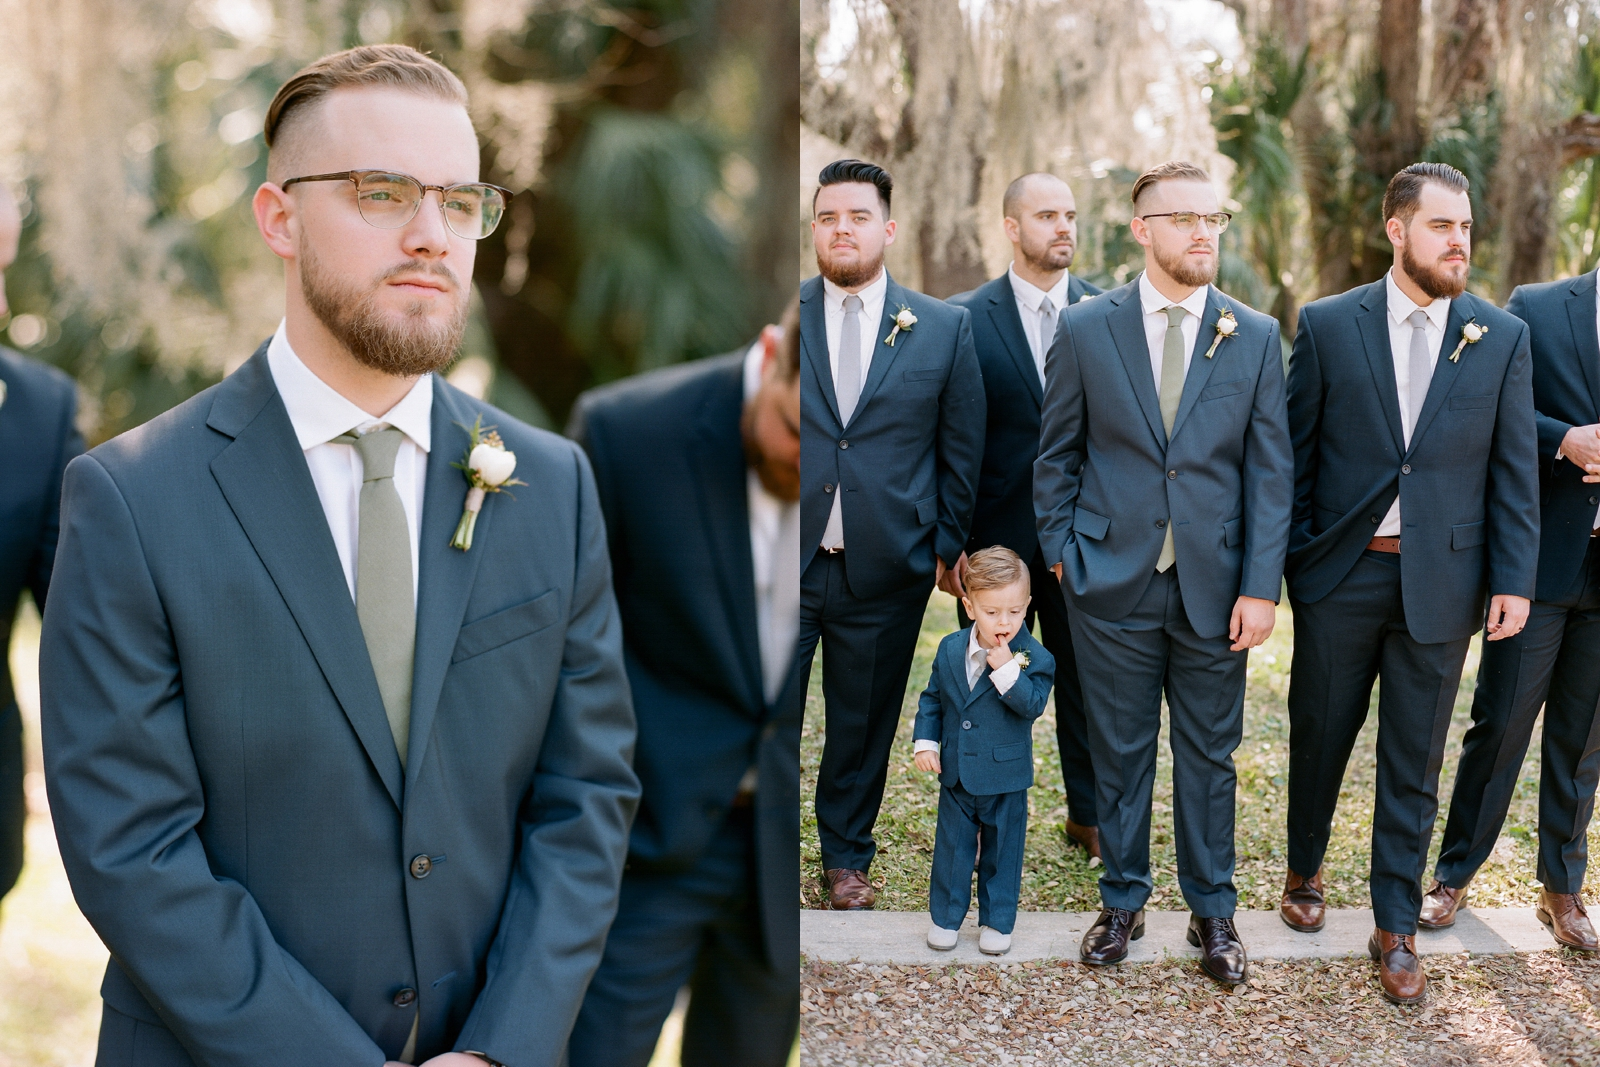 goodwood museum tallahassee wedding photographer - tallahassee florida - shannon griffin_0058.jpg